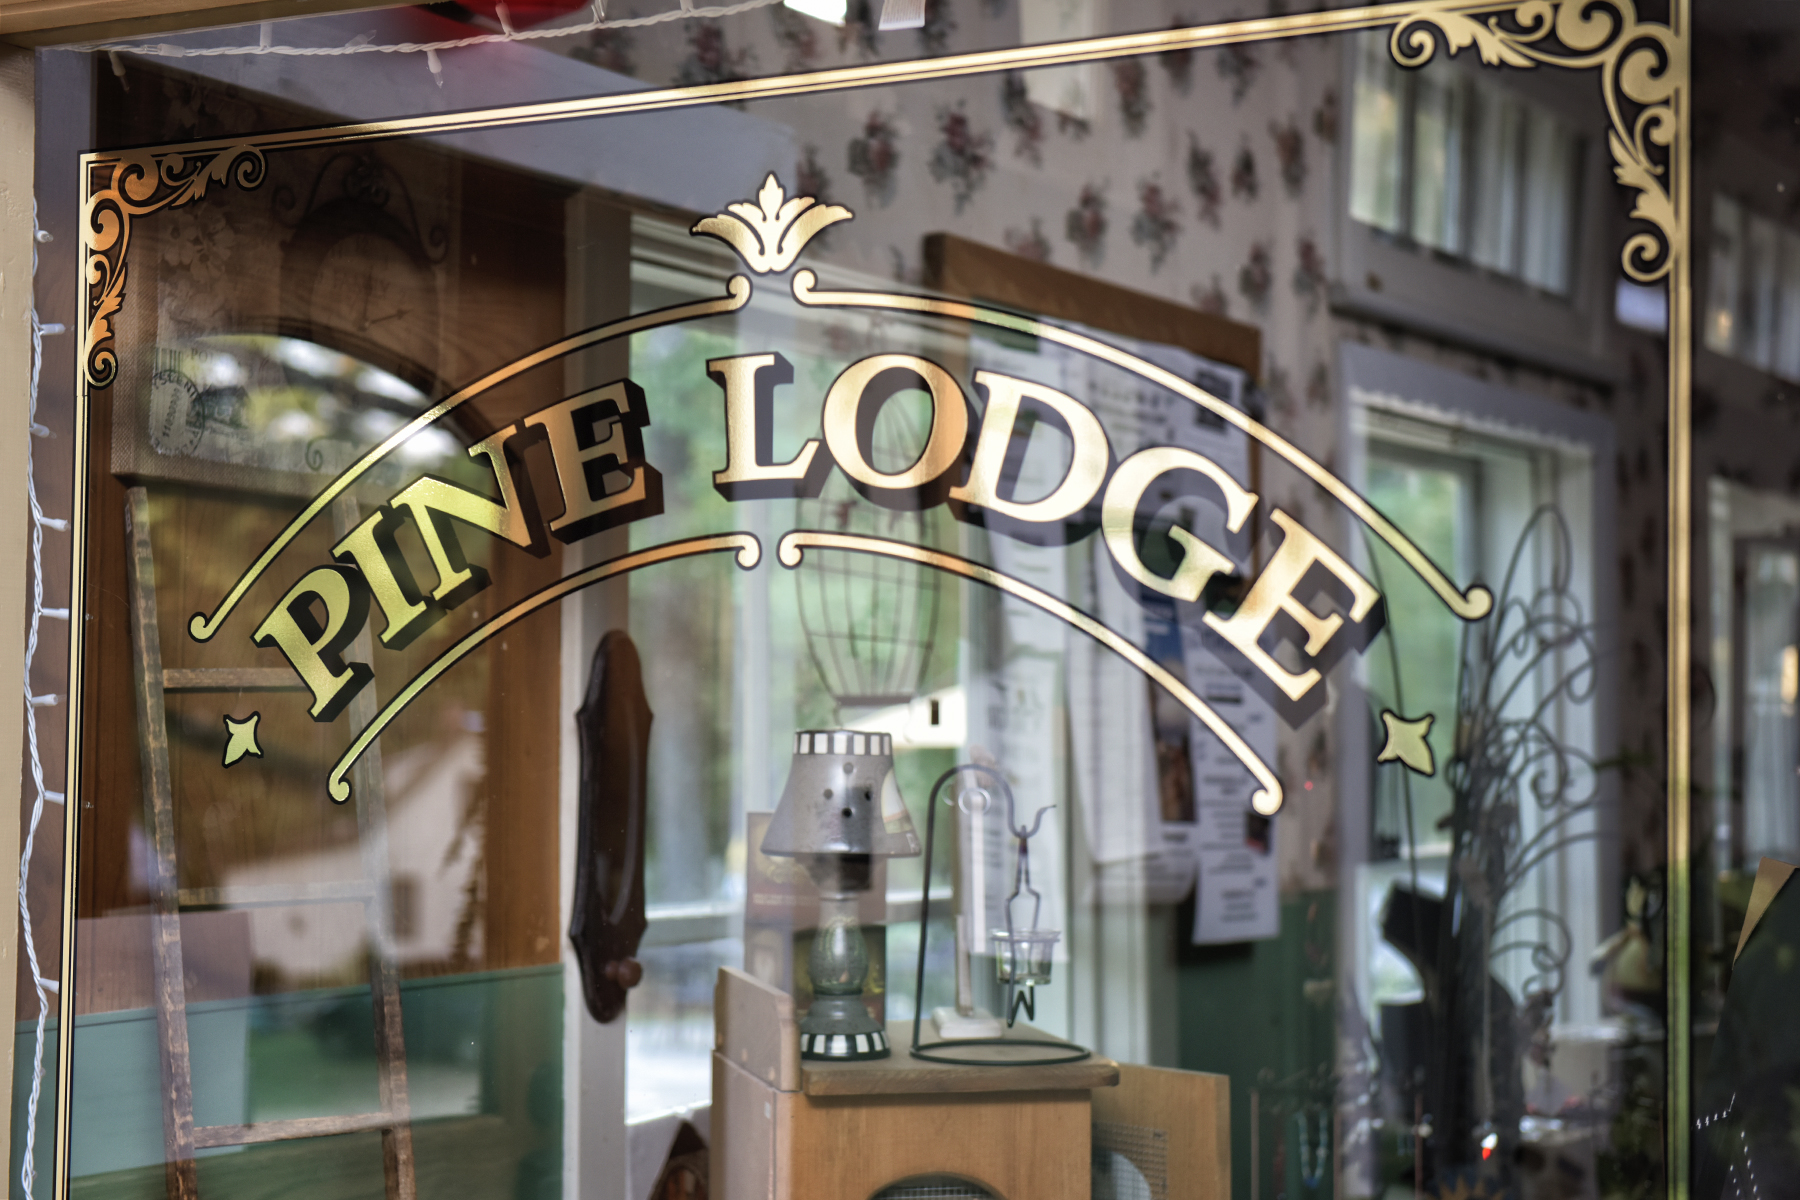 Pine Lodge Cafe